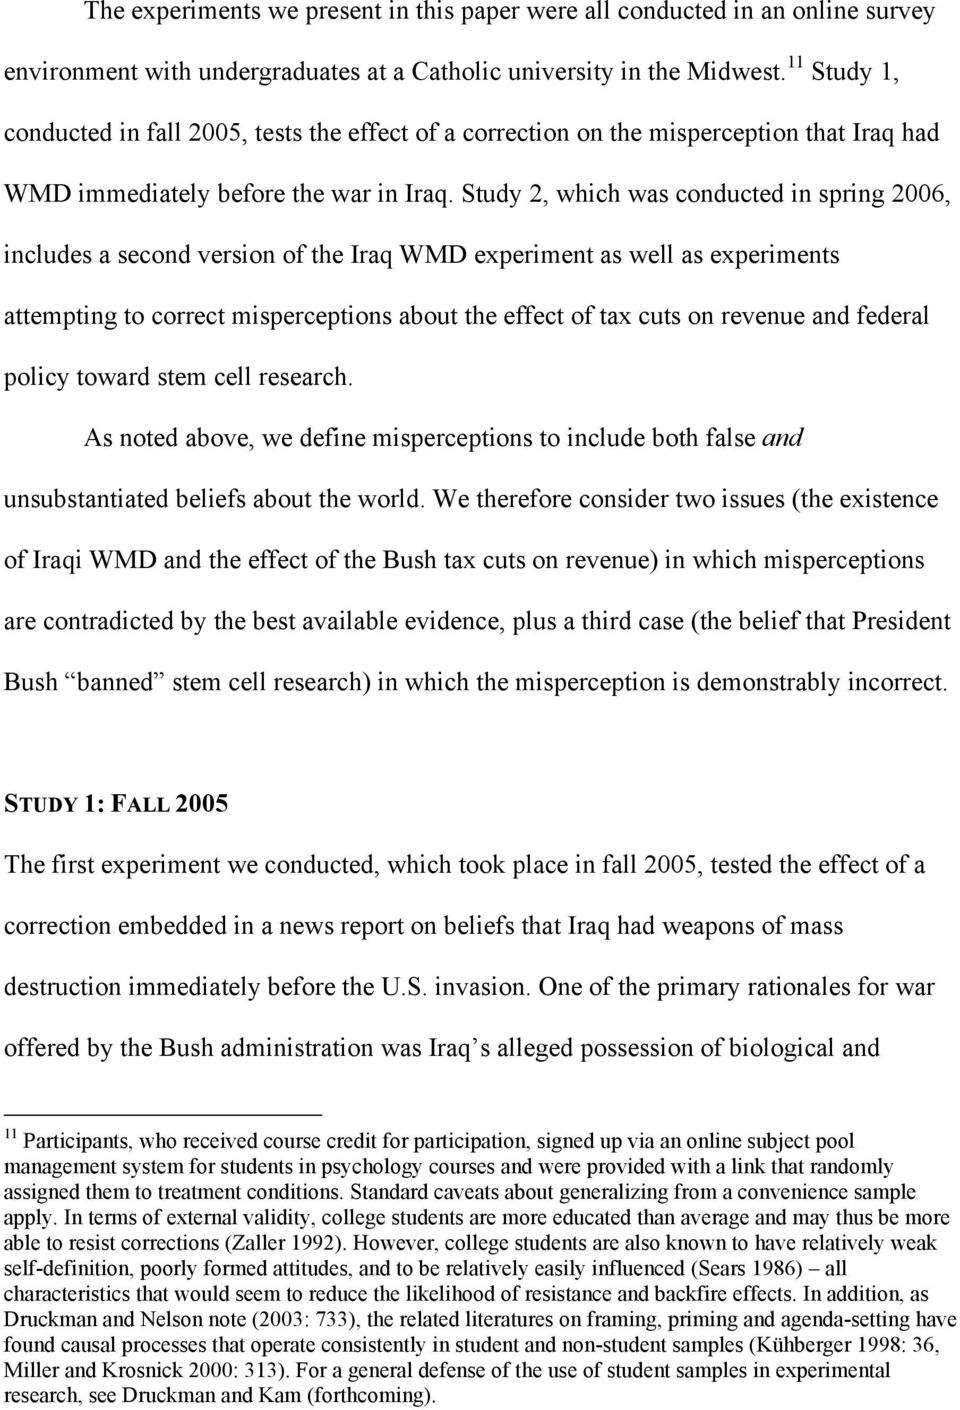 Study 2, which was conducted in spring 2006, includes a second version of the Iraq WMD experiment as well as experiments attempting to correct misperceptions about the effect of tax cuts on revenue